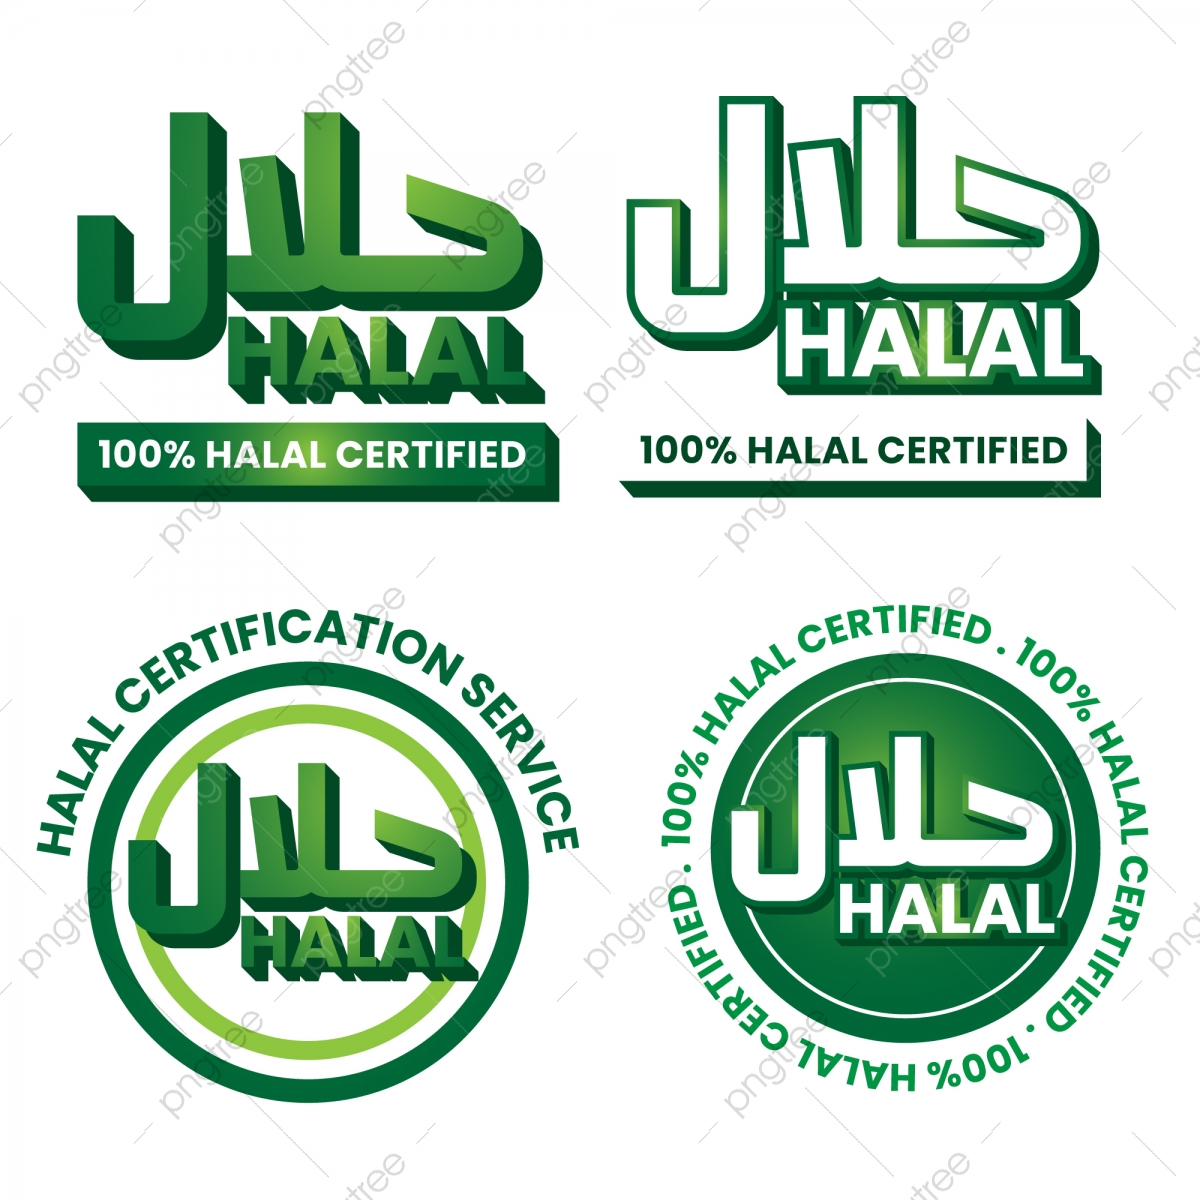 Halal Logo Collection Halal Label Muslim Halal Product Png And Vector With Transparent Background For Free Download